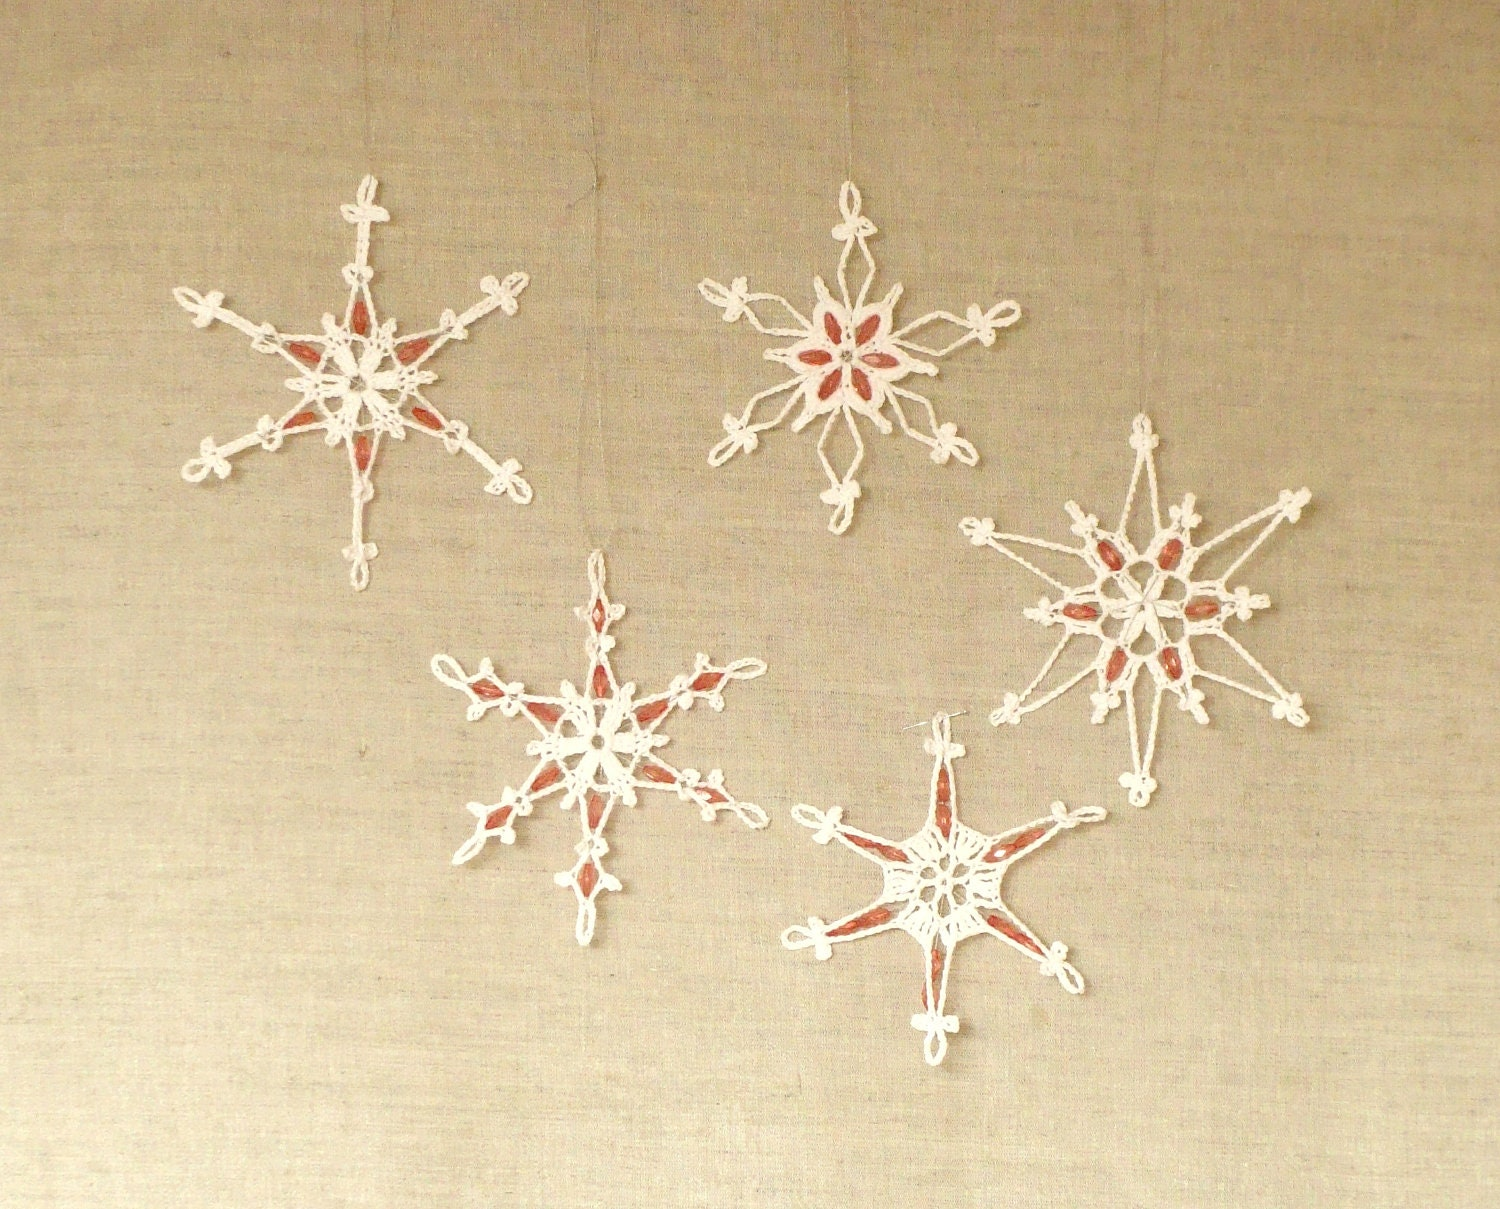 5 Glamorous Lace Crochet Snowflakes with Beads, christmas decorations -   different designs - zolayka